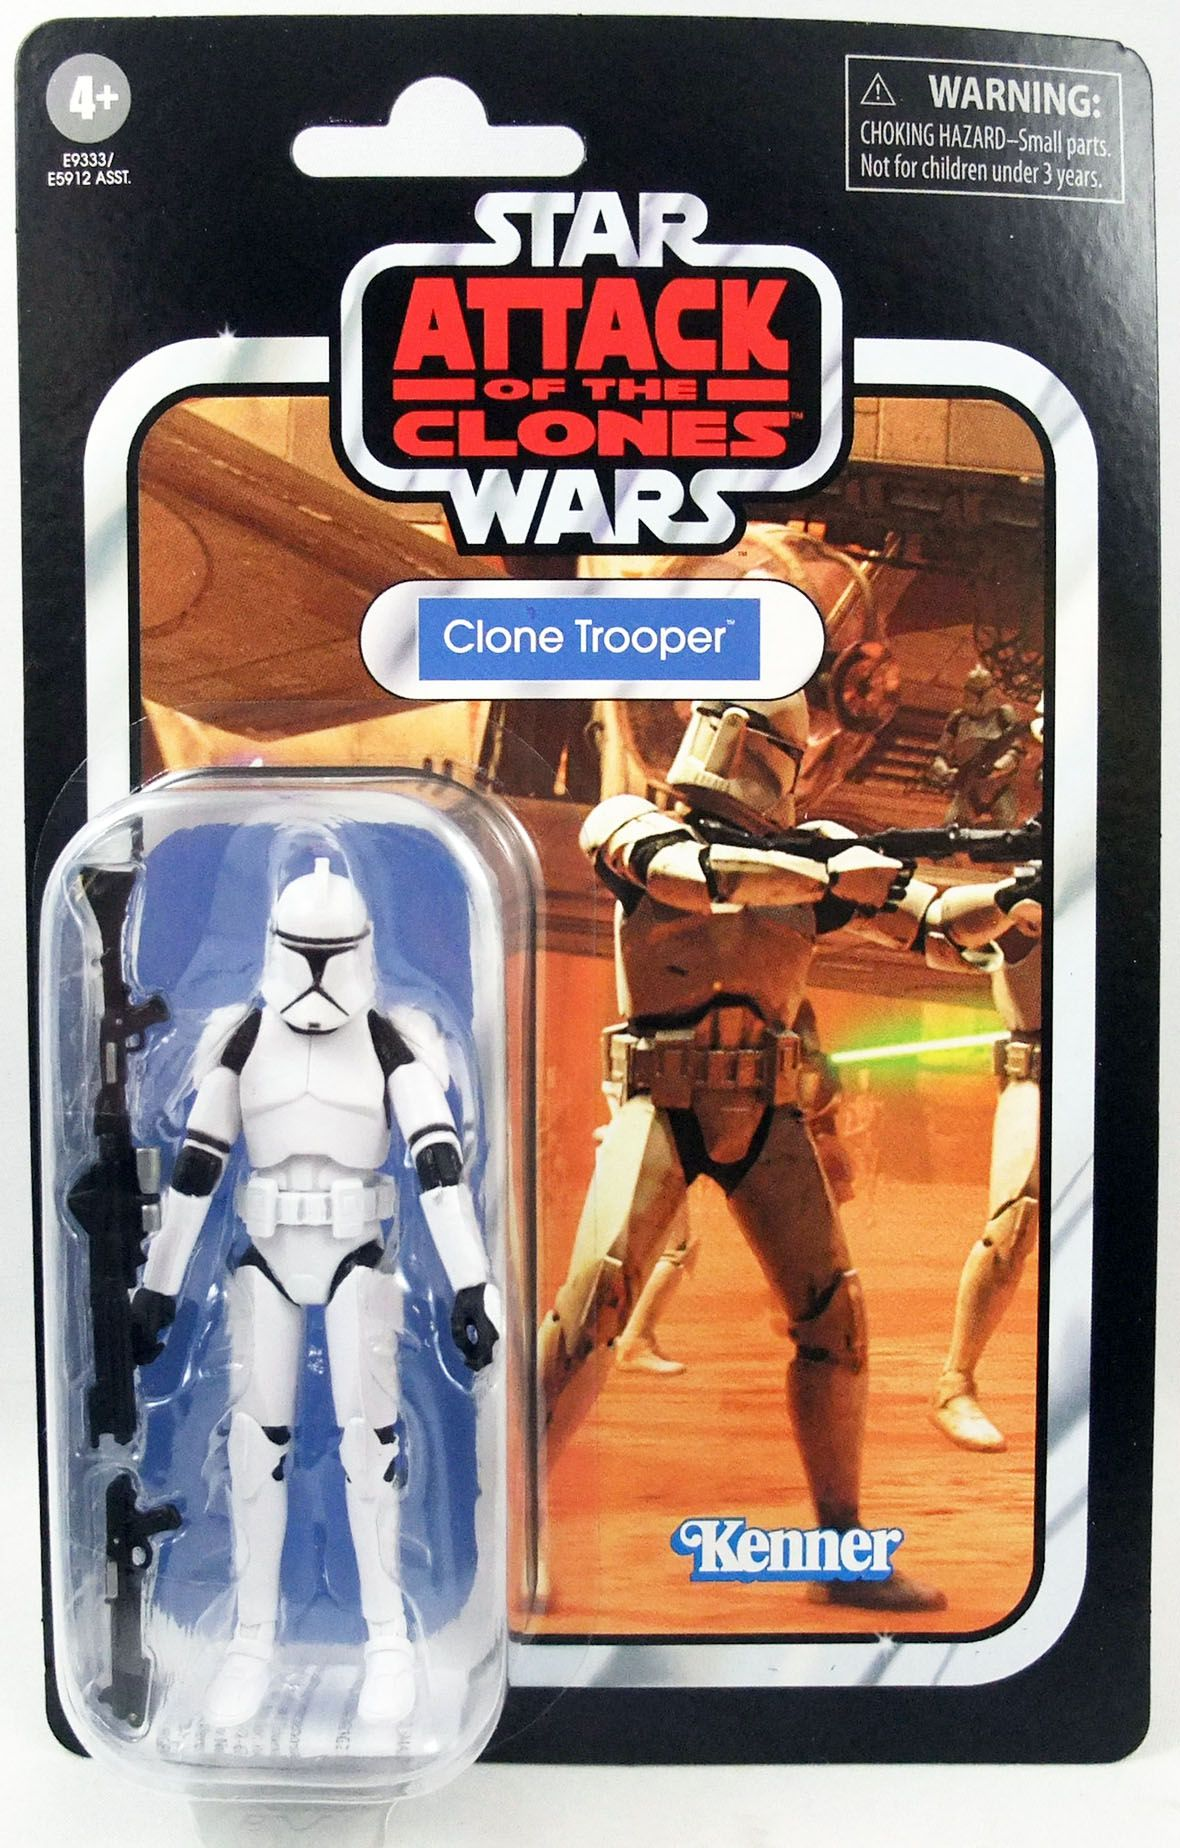 Star Wars (The Vintage Collection) - Hasbro - Clone Trooper - Attack of the Clones